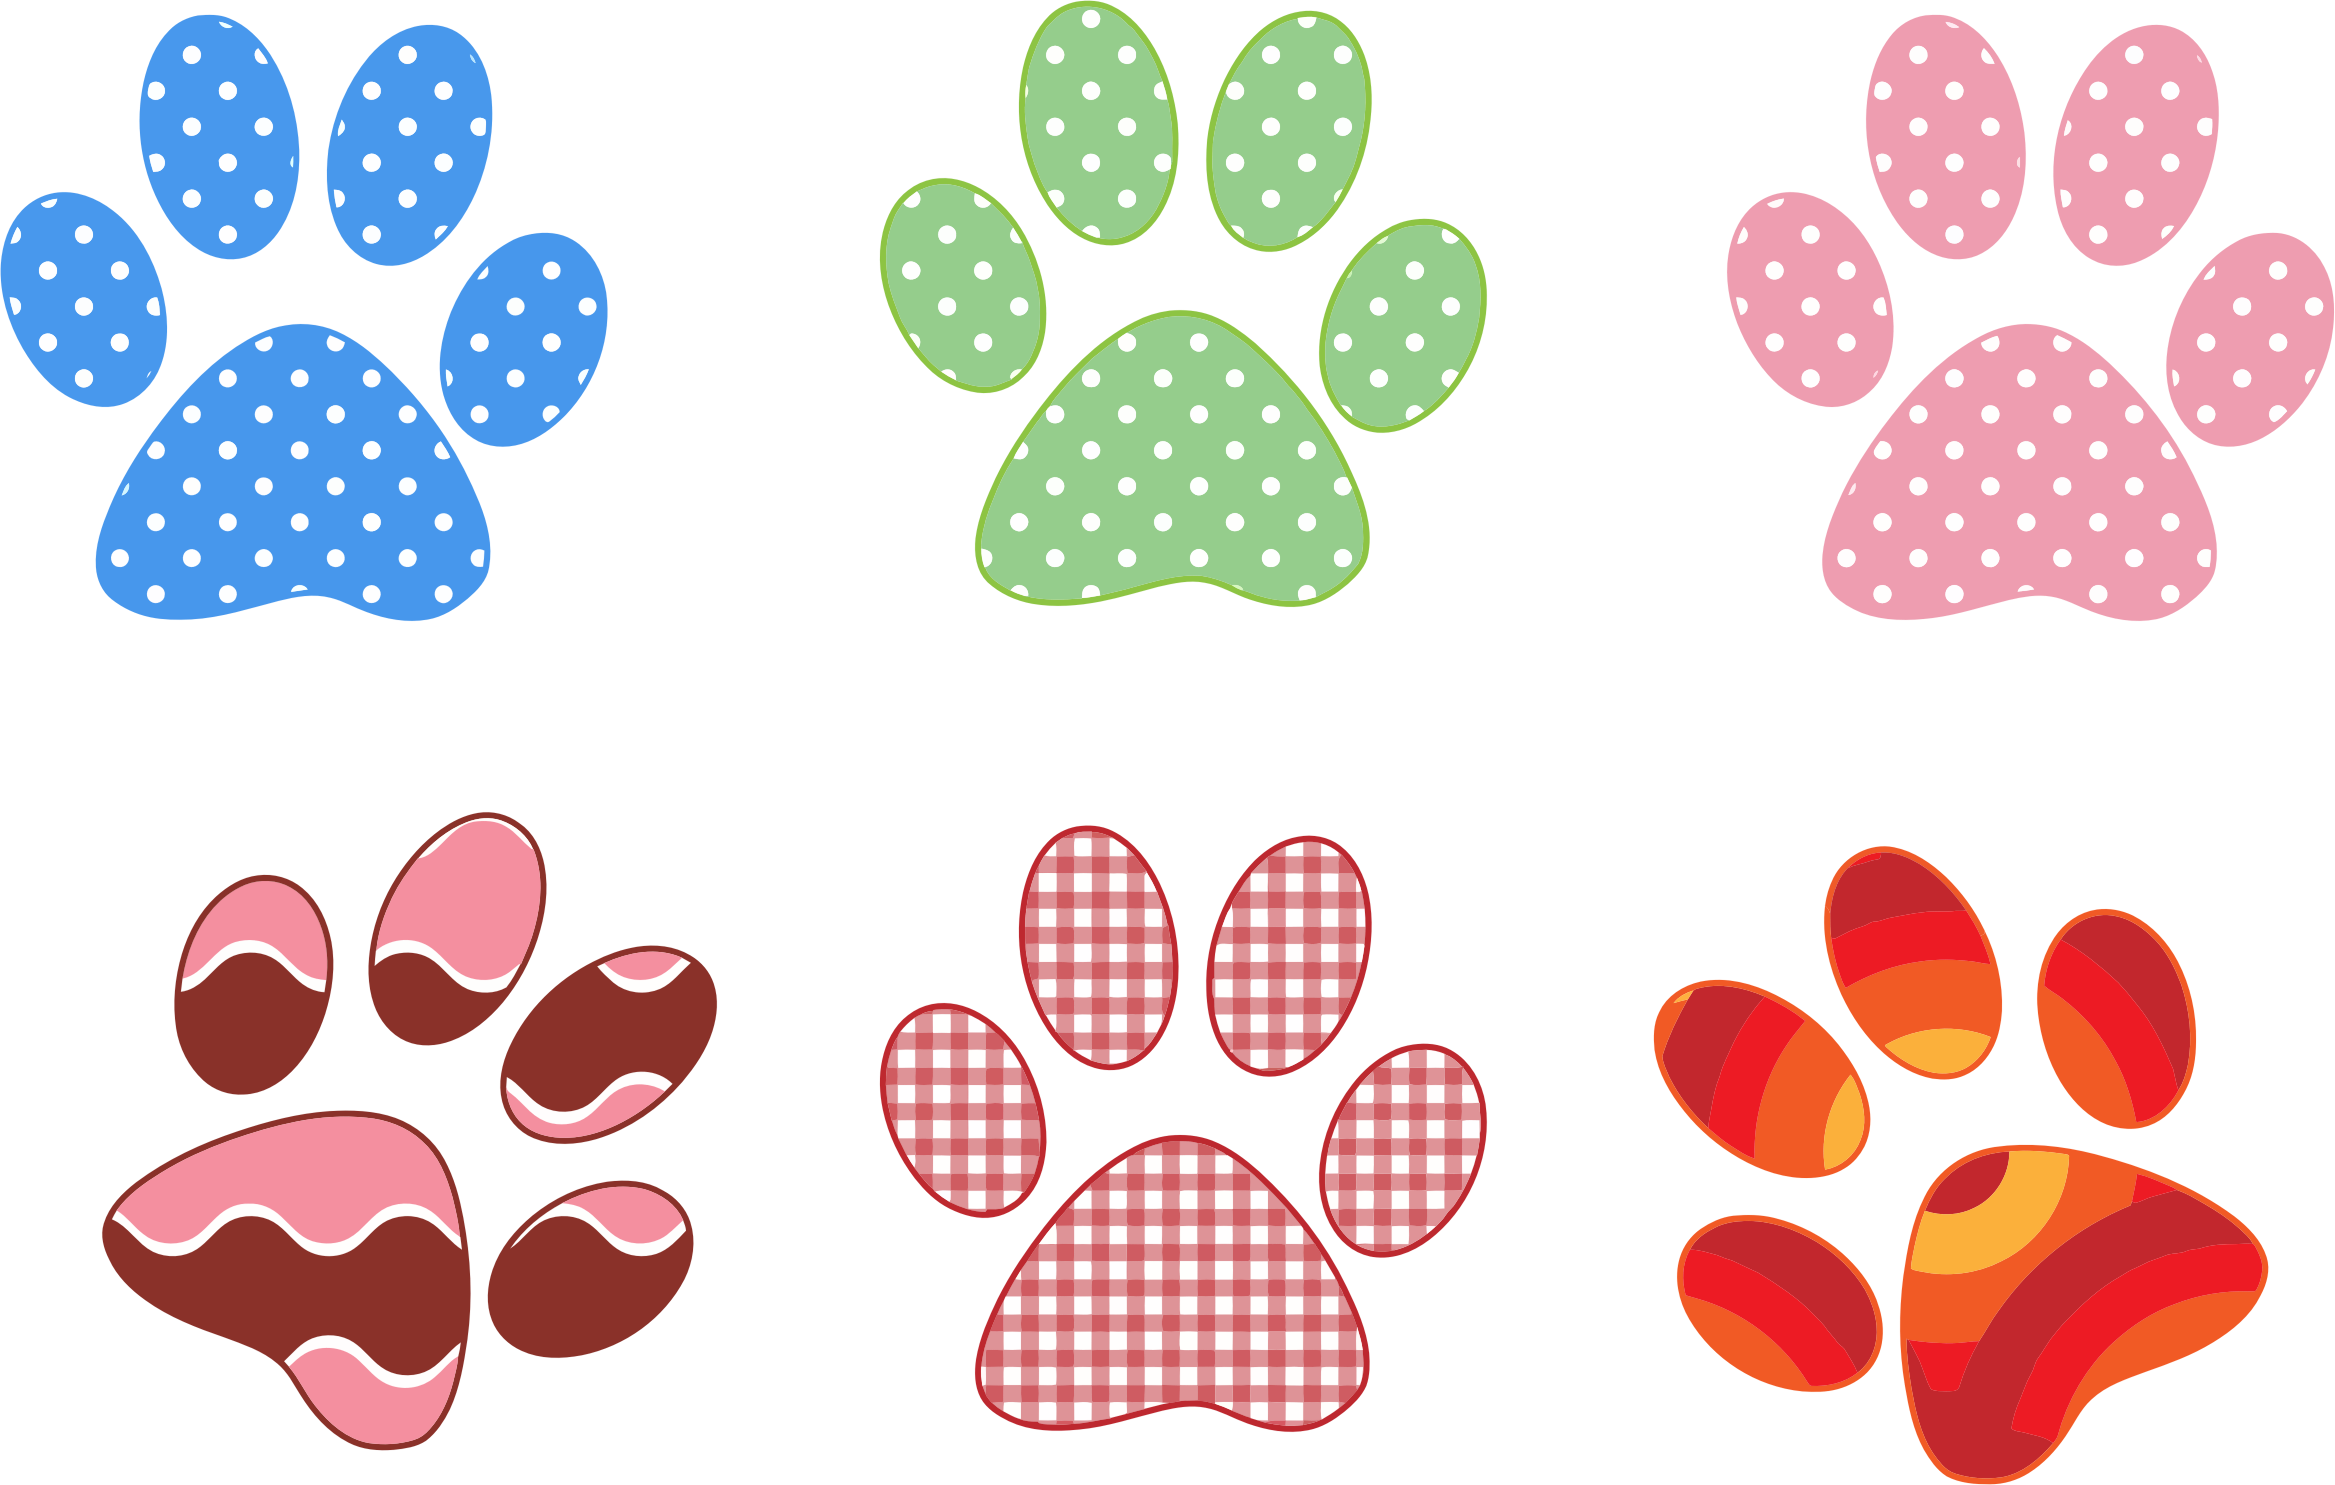 Paw prints big image. Pocket clipart colorful